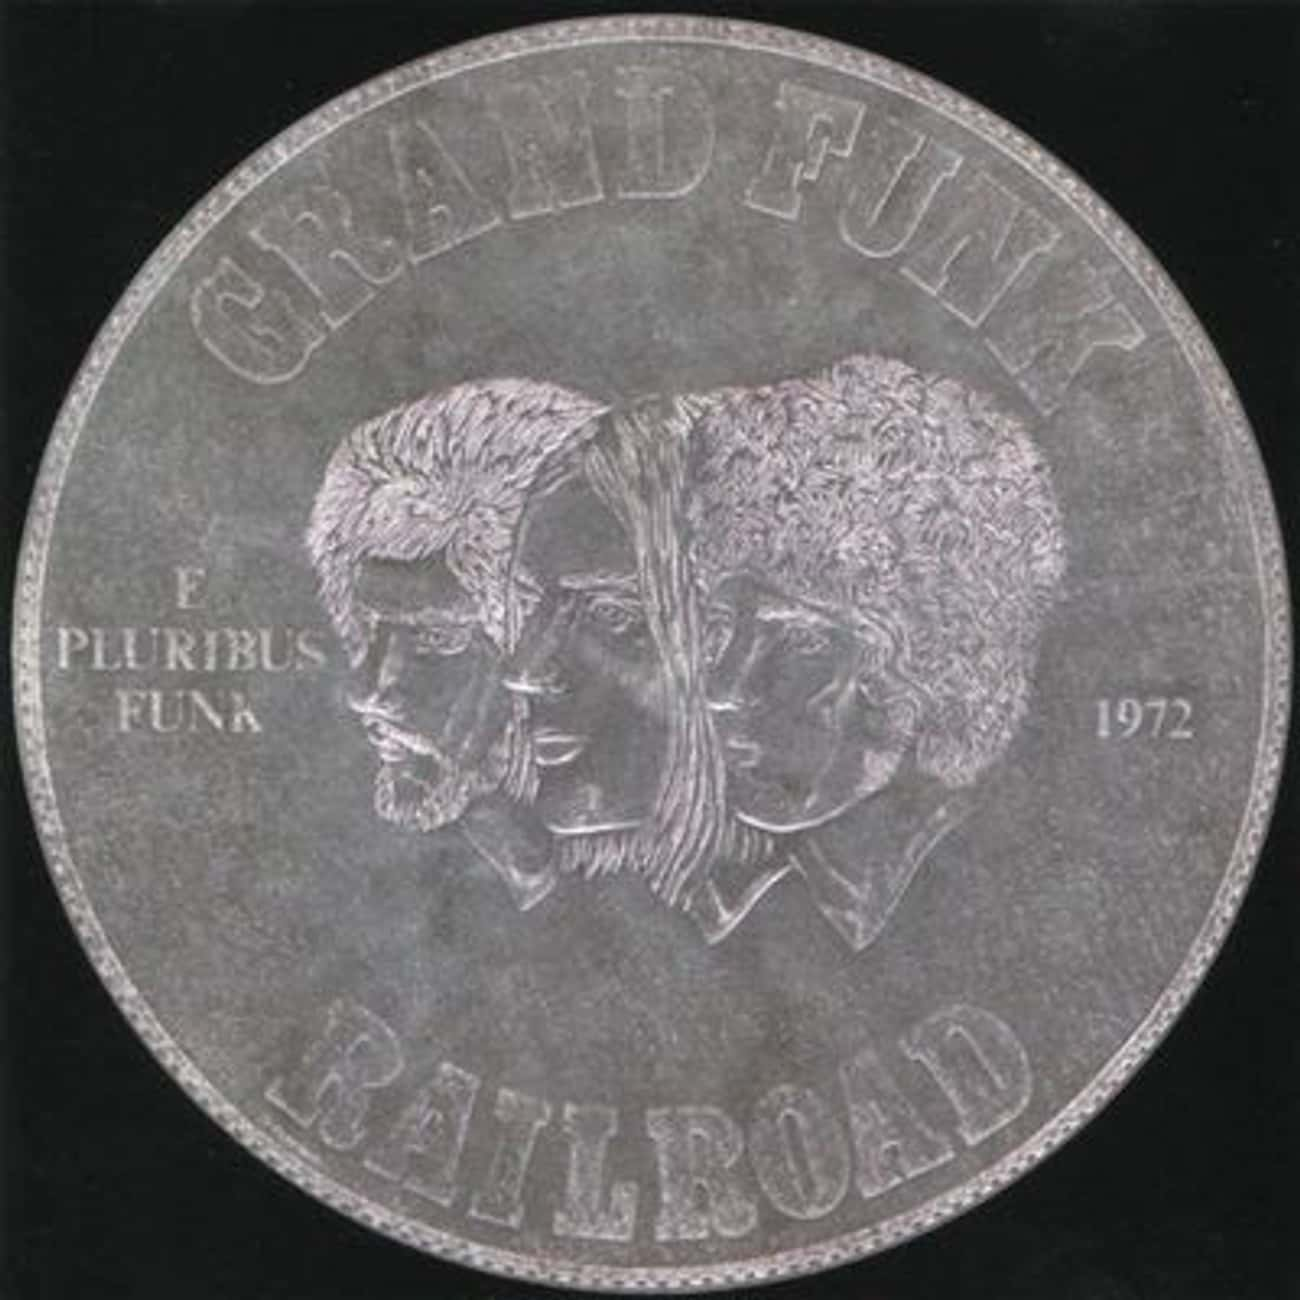 E Pluribus Funk is listed (or ranked) 3 on the list The Best Grand Funk Railroad Albums of All Time